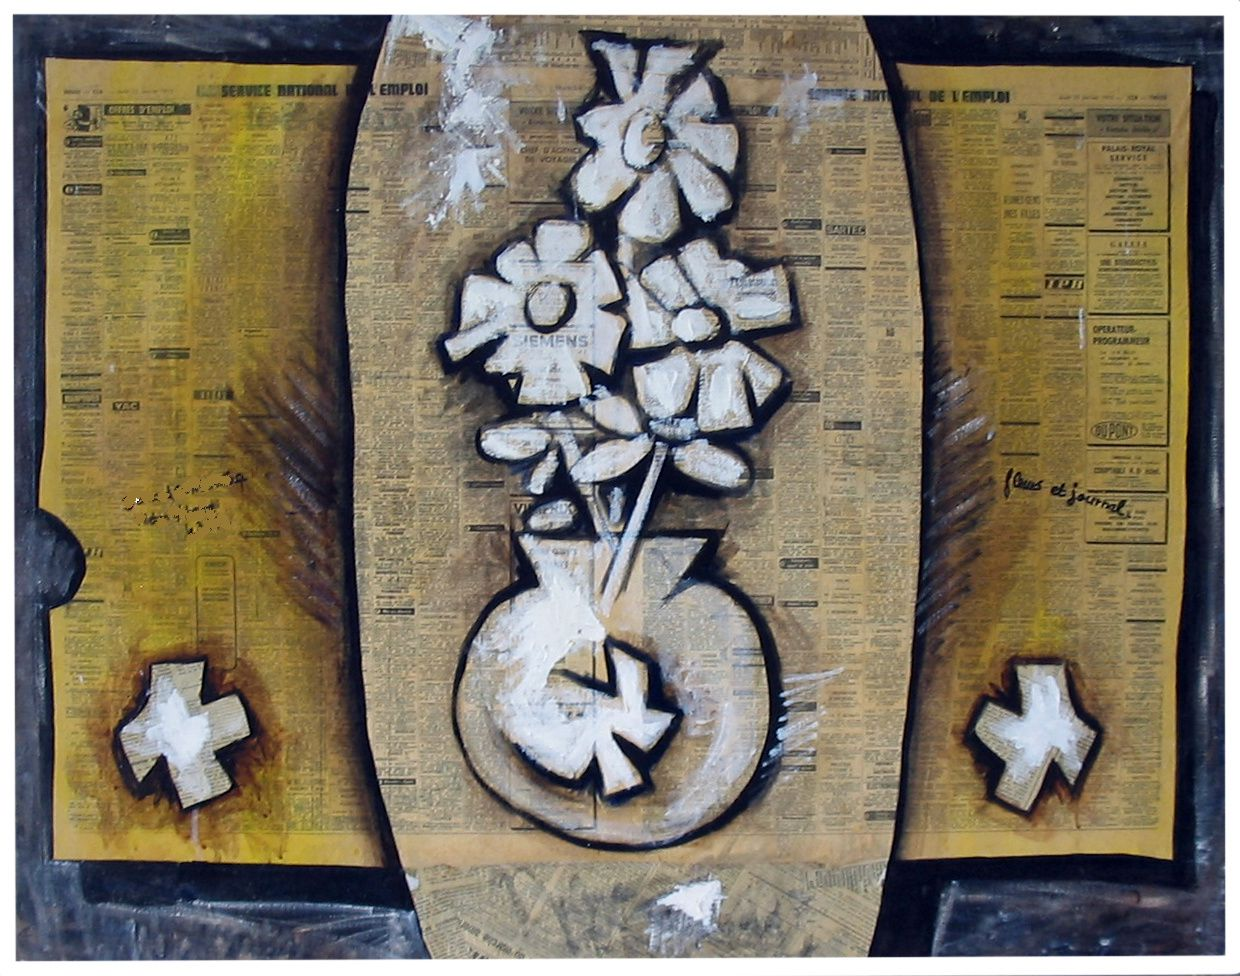 8 - FLEUR & JOURNAL  -Technique mixte - 73 x 92 cm.